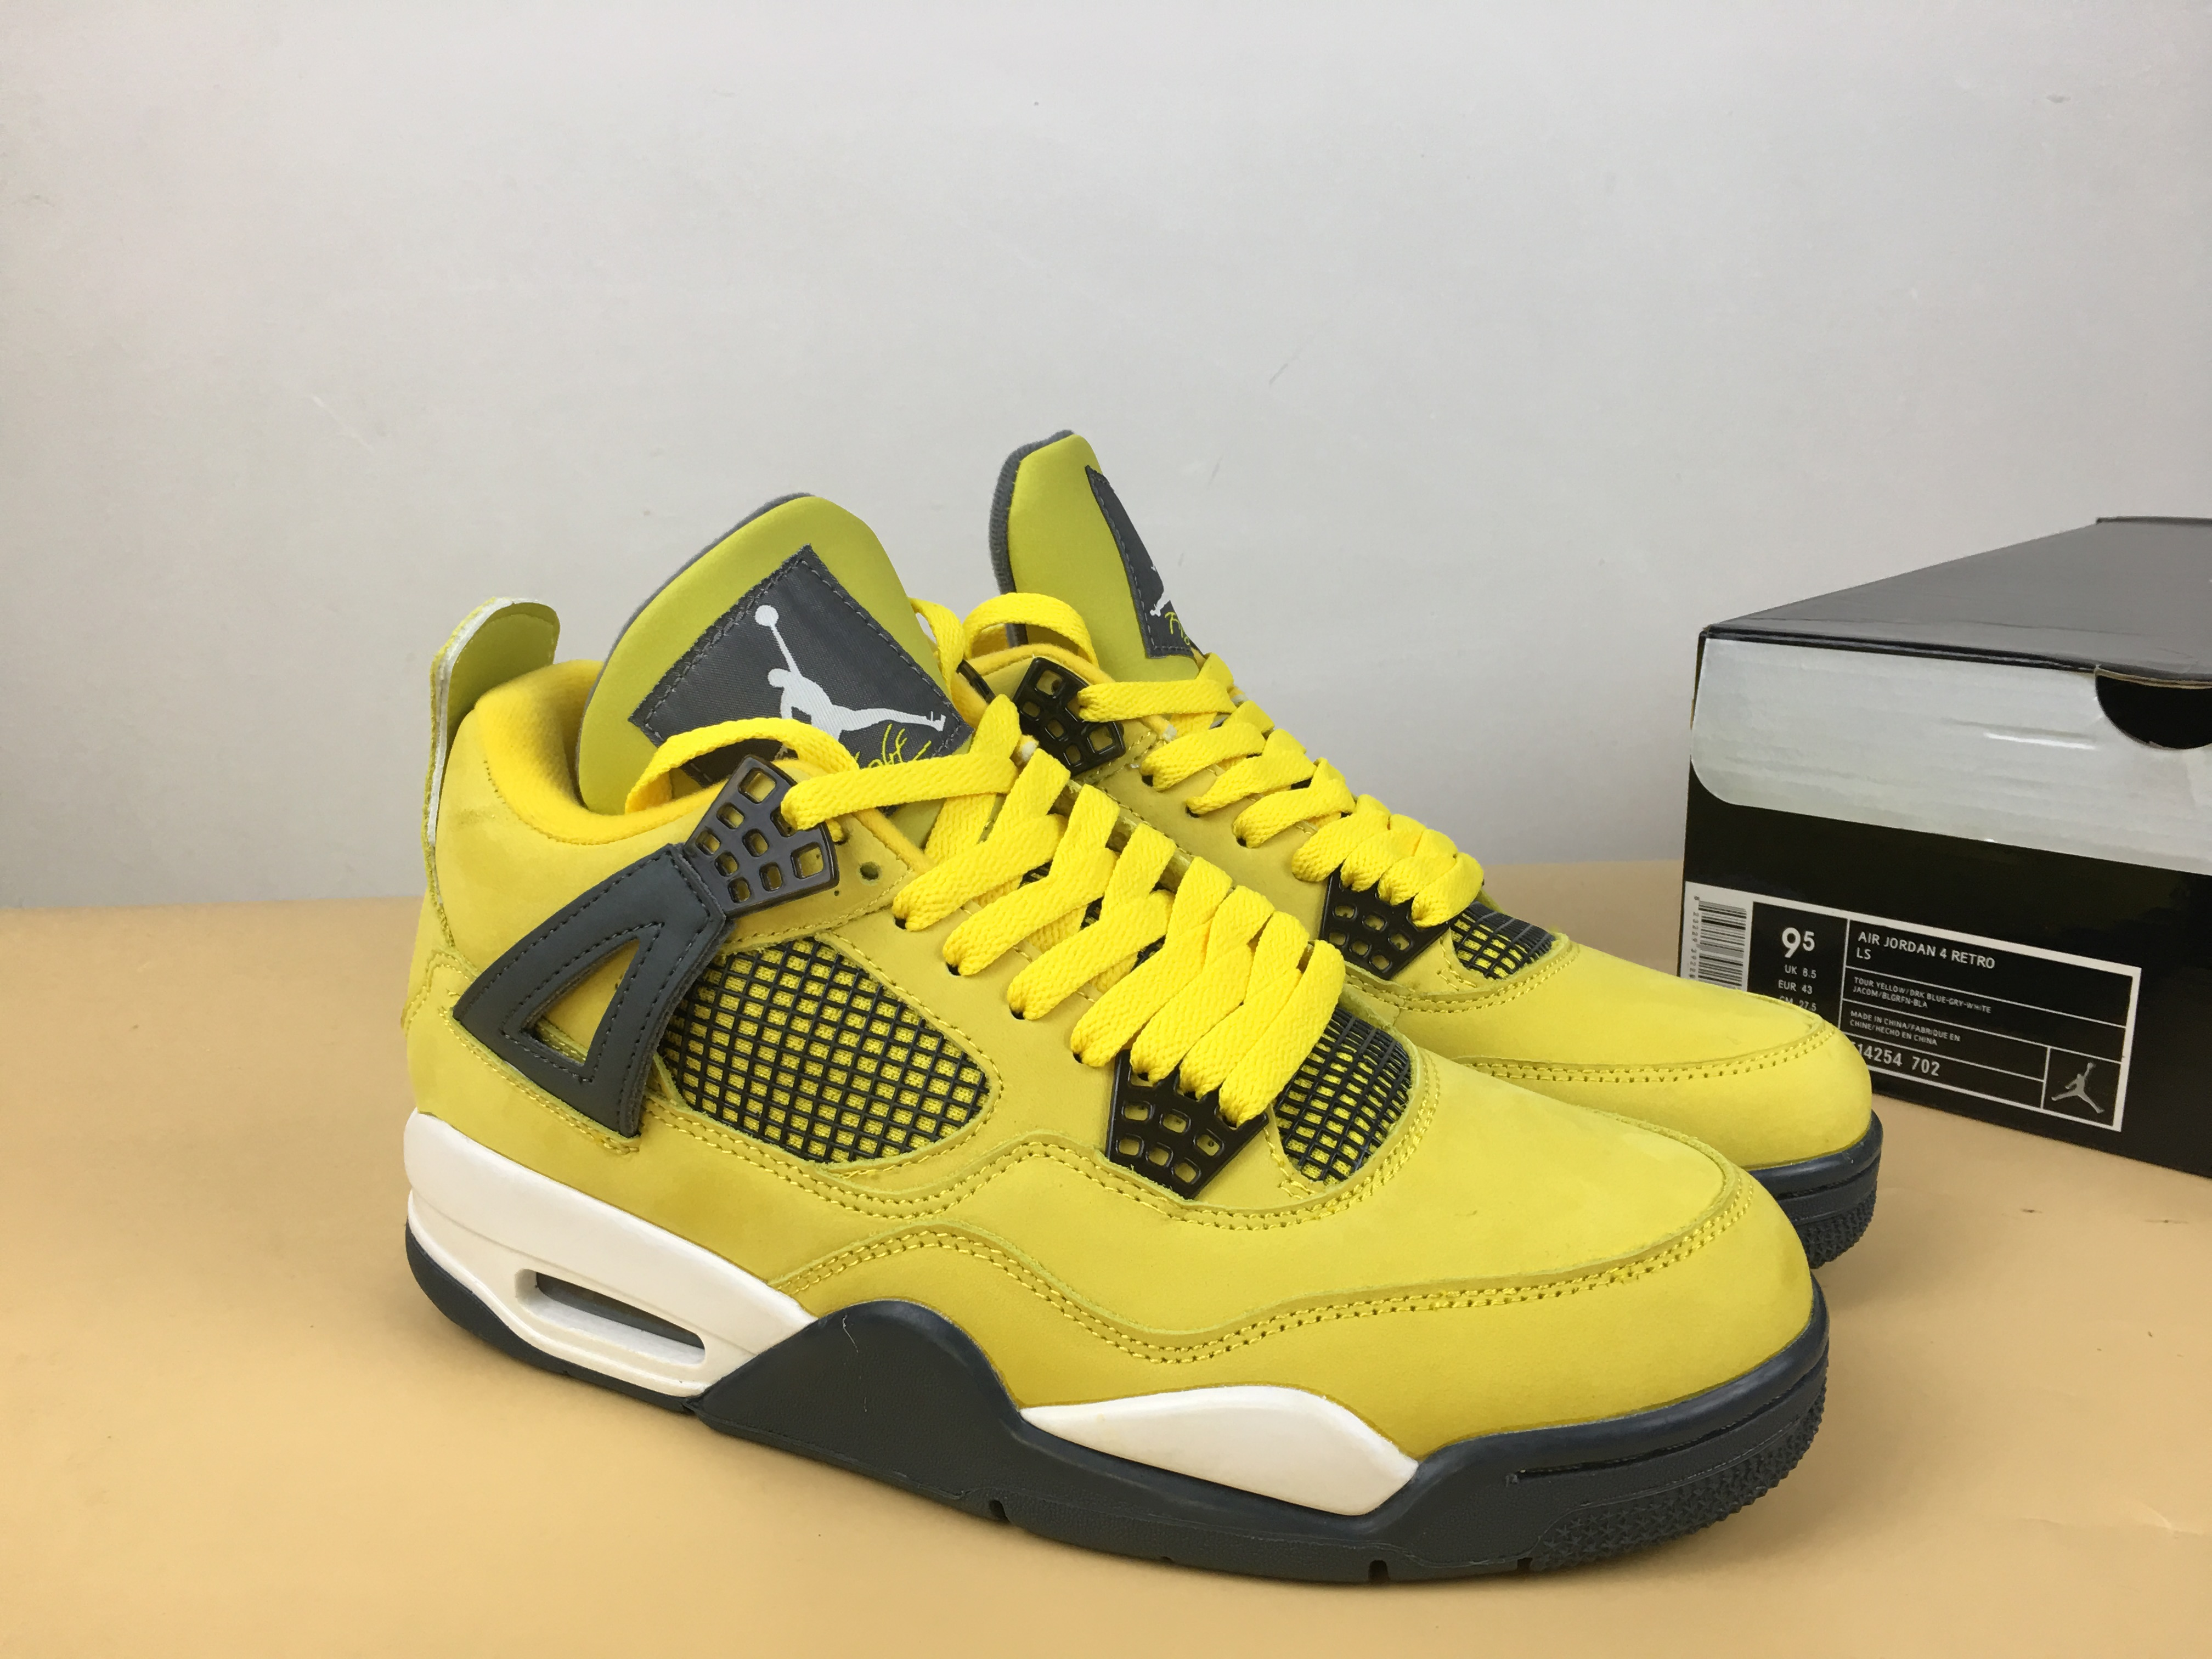 Air Jordan 4 Lightning Yellow Black Shoes